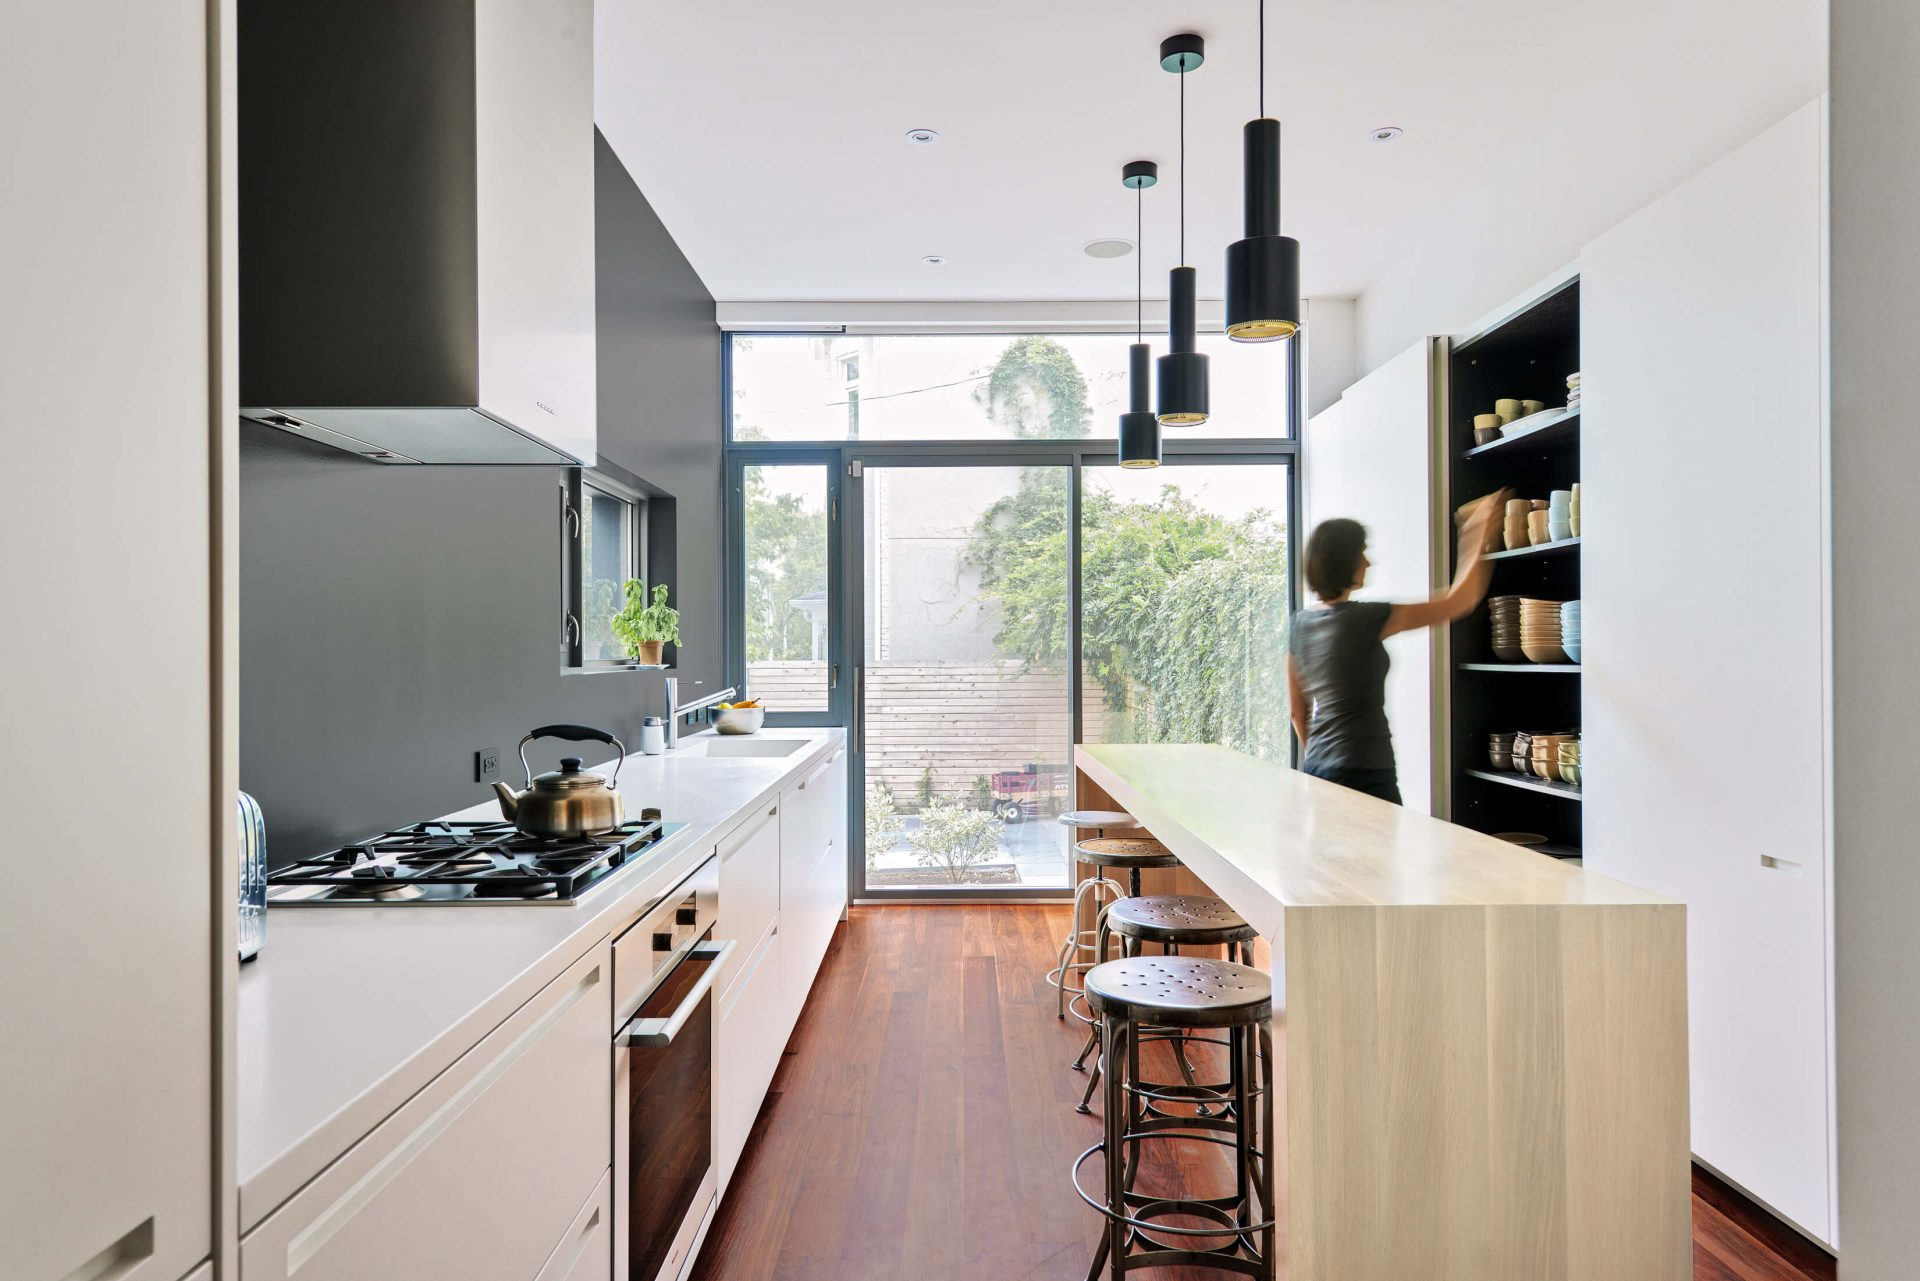 dad-contrast-house-kitchen